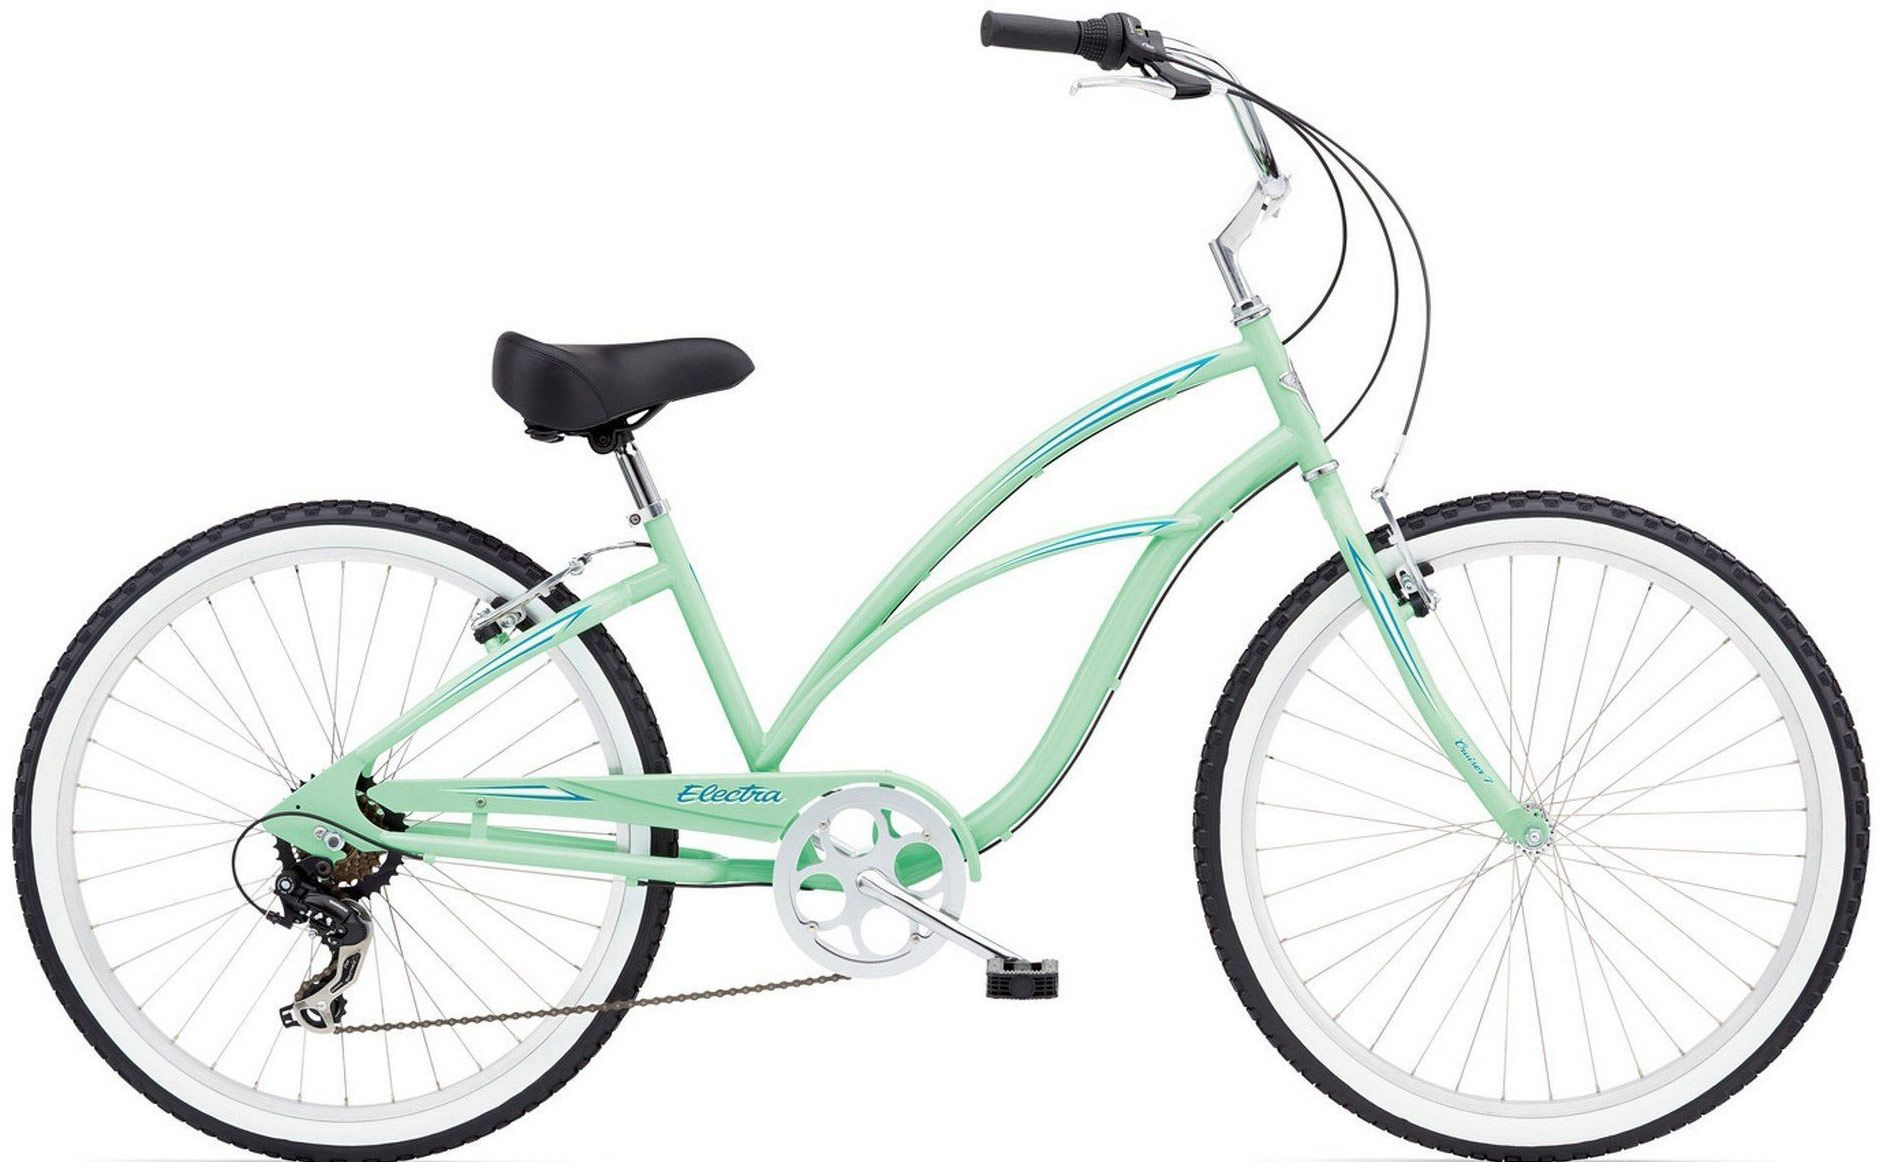 My New Bike The Electra Cruiser 2015 In Seafoam Green Bicycles For Sale Trek Bikes Bicycle